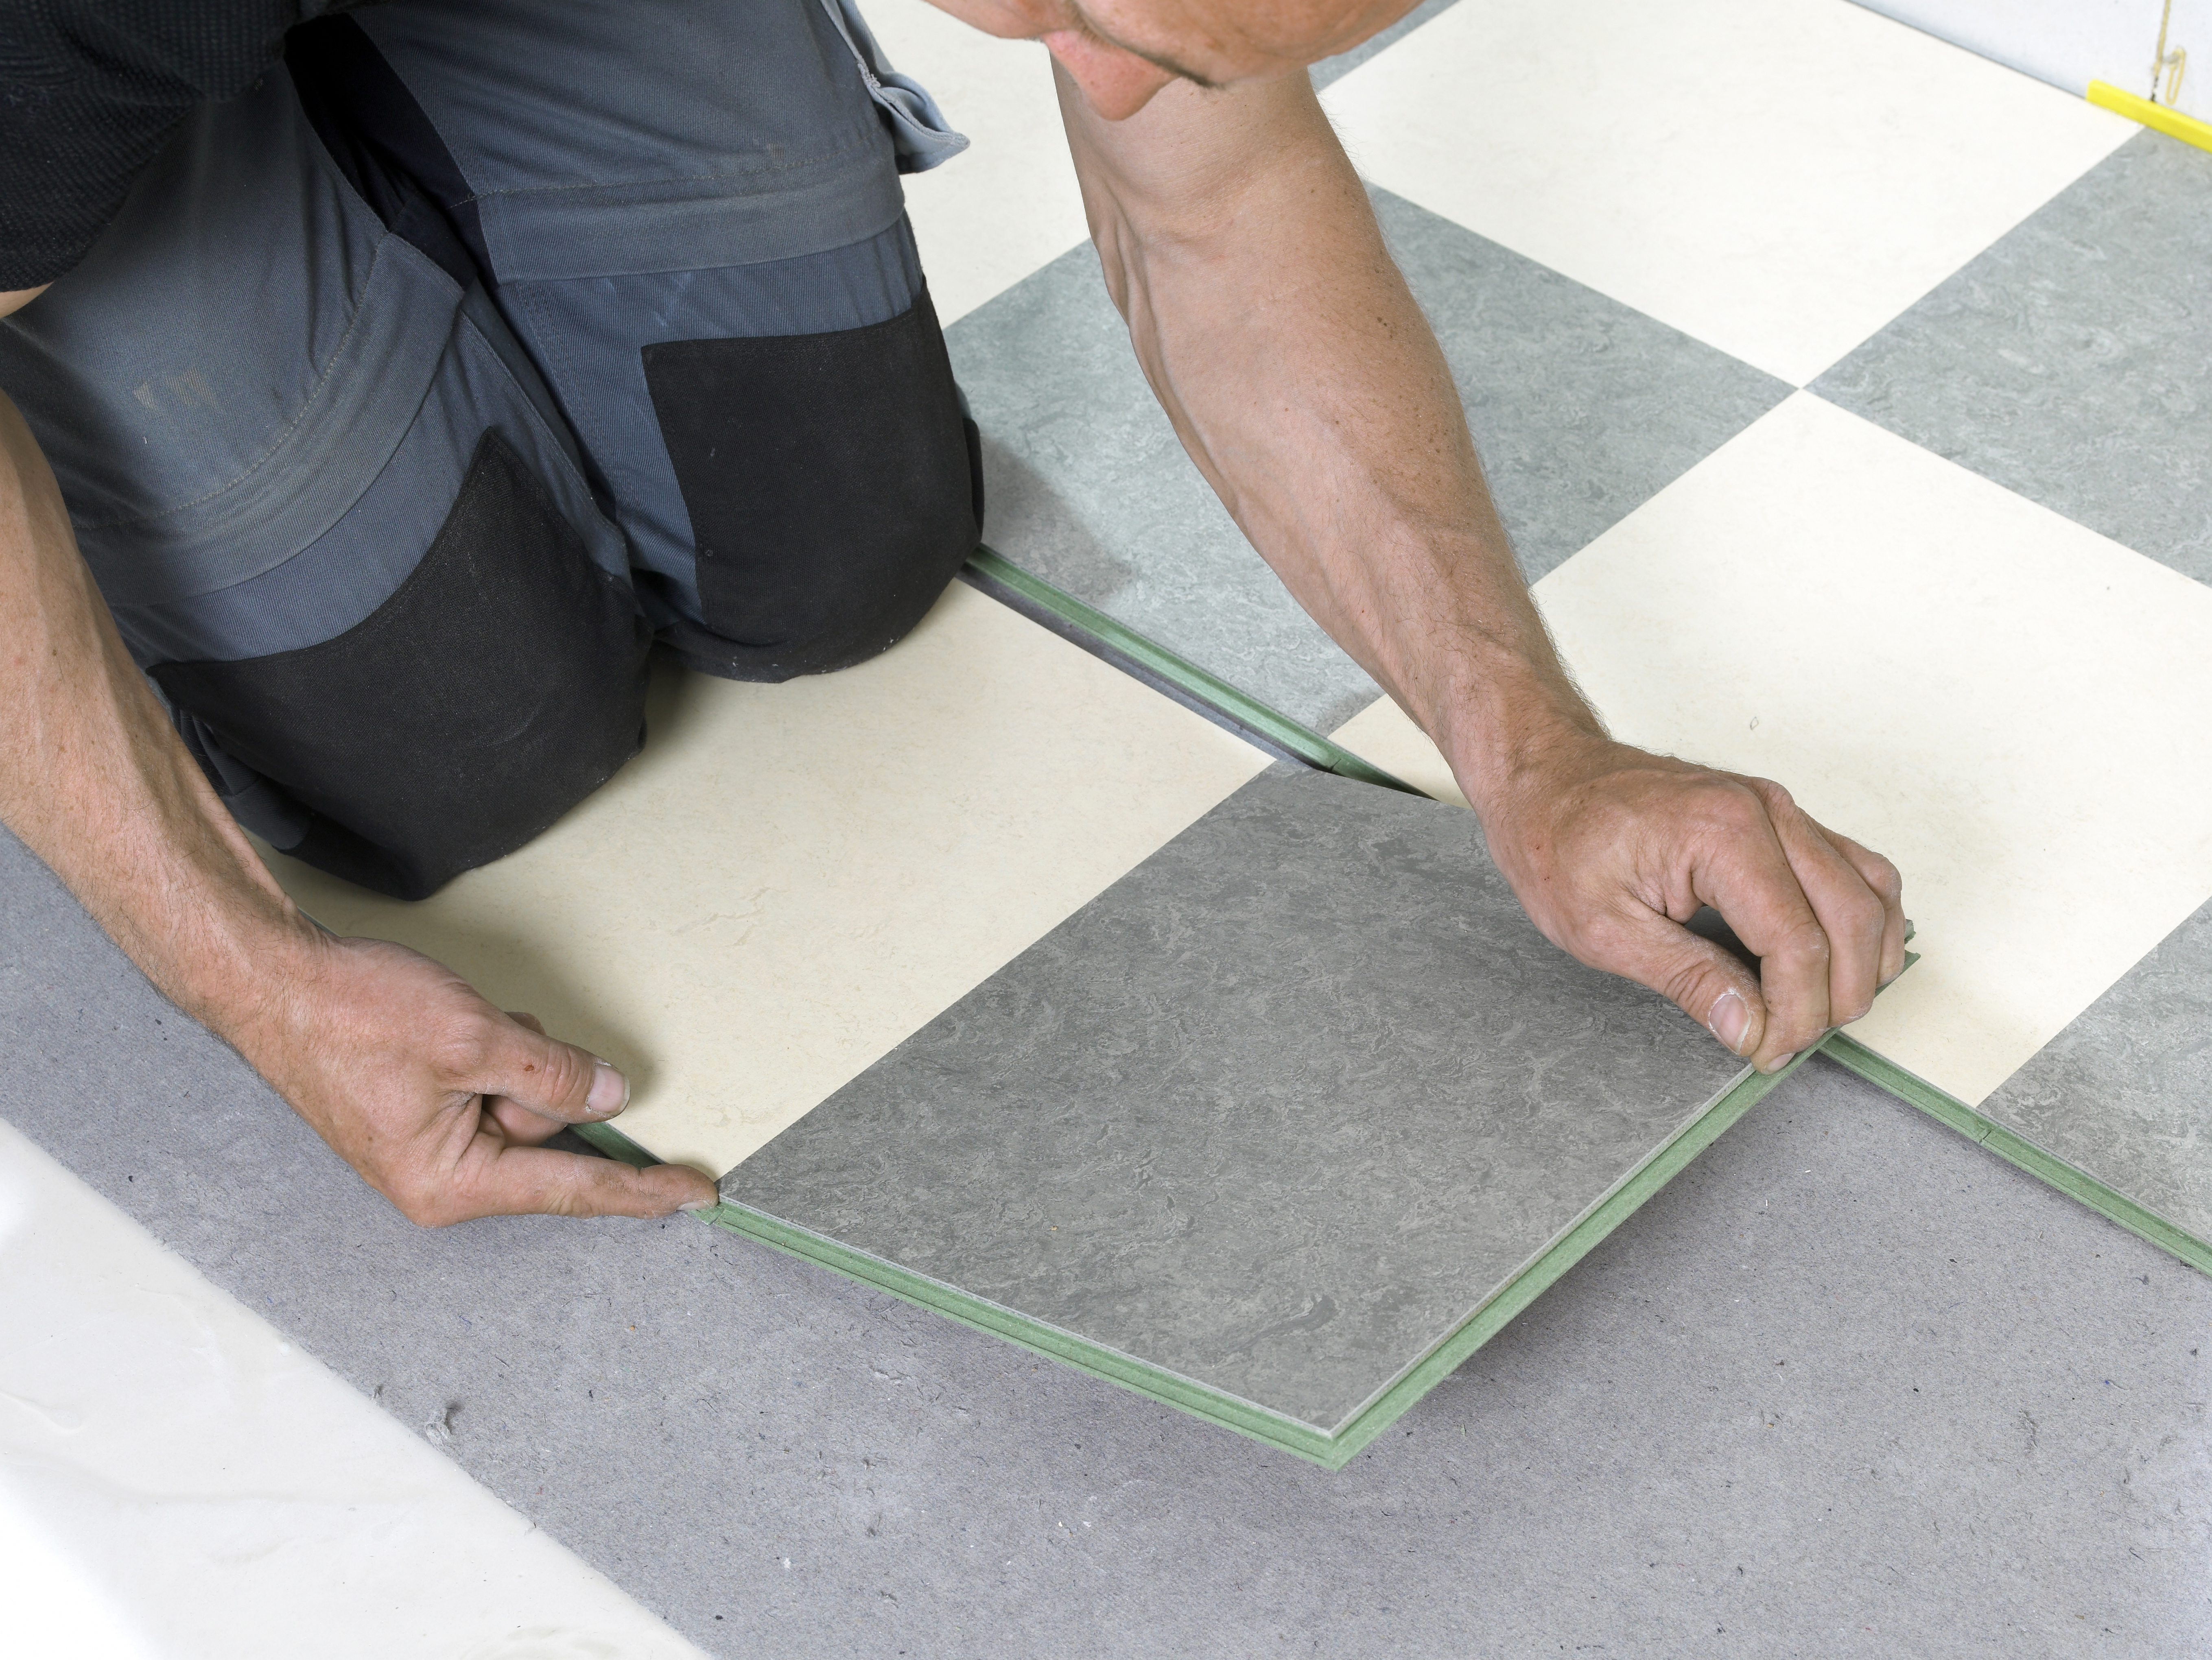 Laying Linoleum Without Adhesive Glue Home Guides Sf Gate